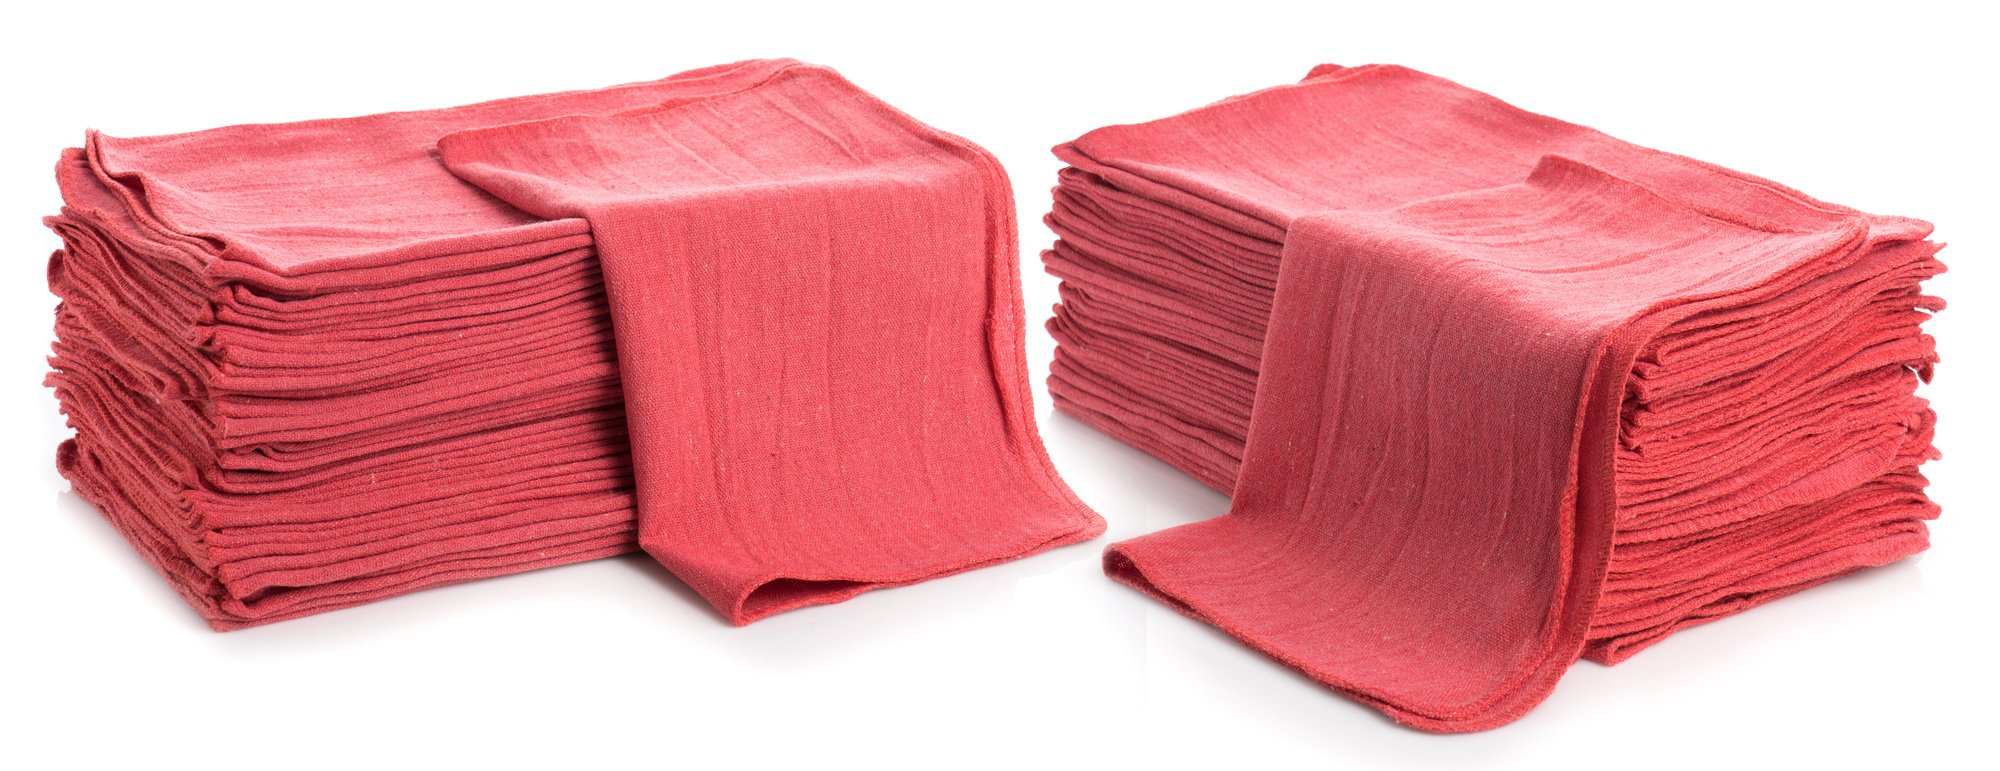 Cleaning Solutions Shop Towels (Pack of 50) 12'' X 14'' Reusable Cotton Towels - Perfect for Cleaning, Mechanic, Auto and Home. Commercial Grade Shop Rags (Red) by Simpli-Magic